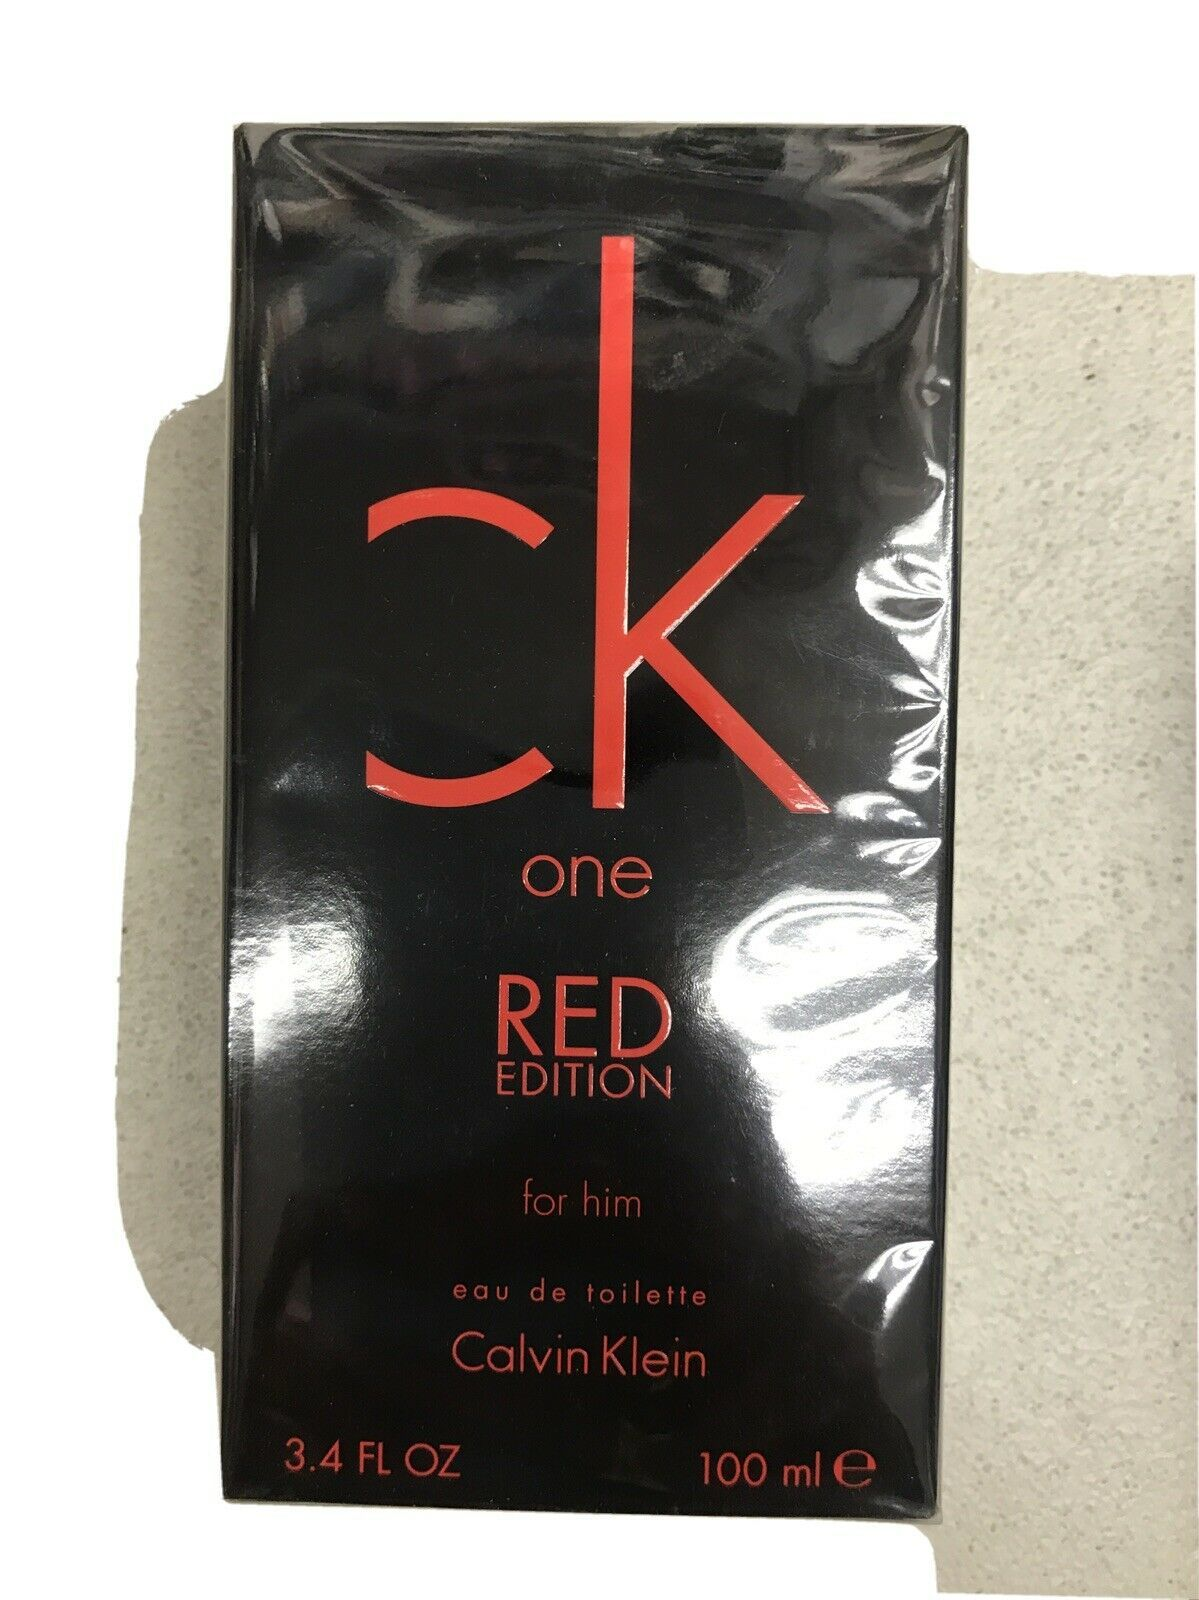 Aaaaaacalvin klein red cologne 3.4 oz cologne